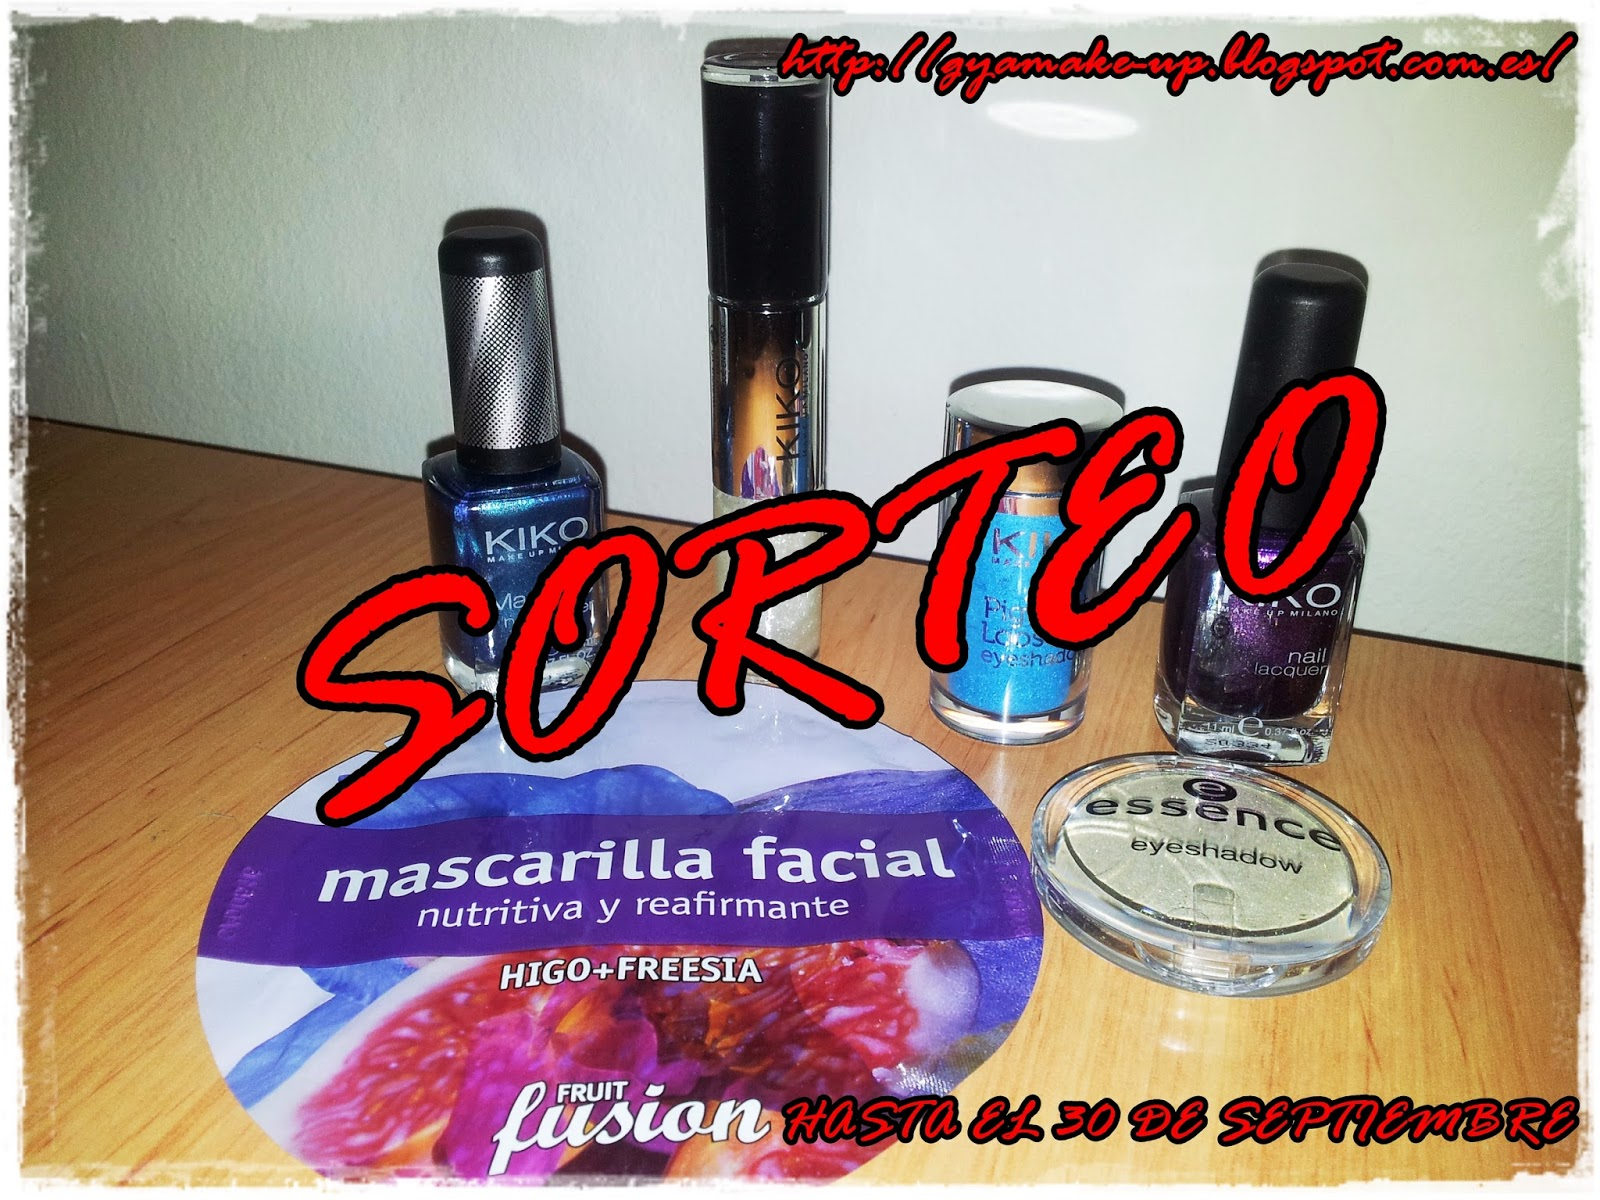 Sorteo up ¬ beauty